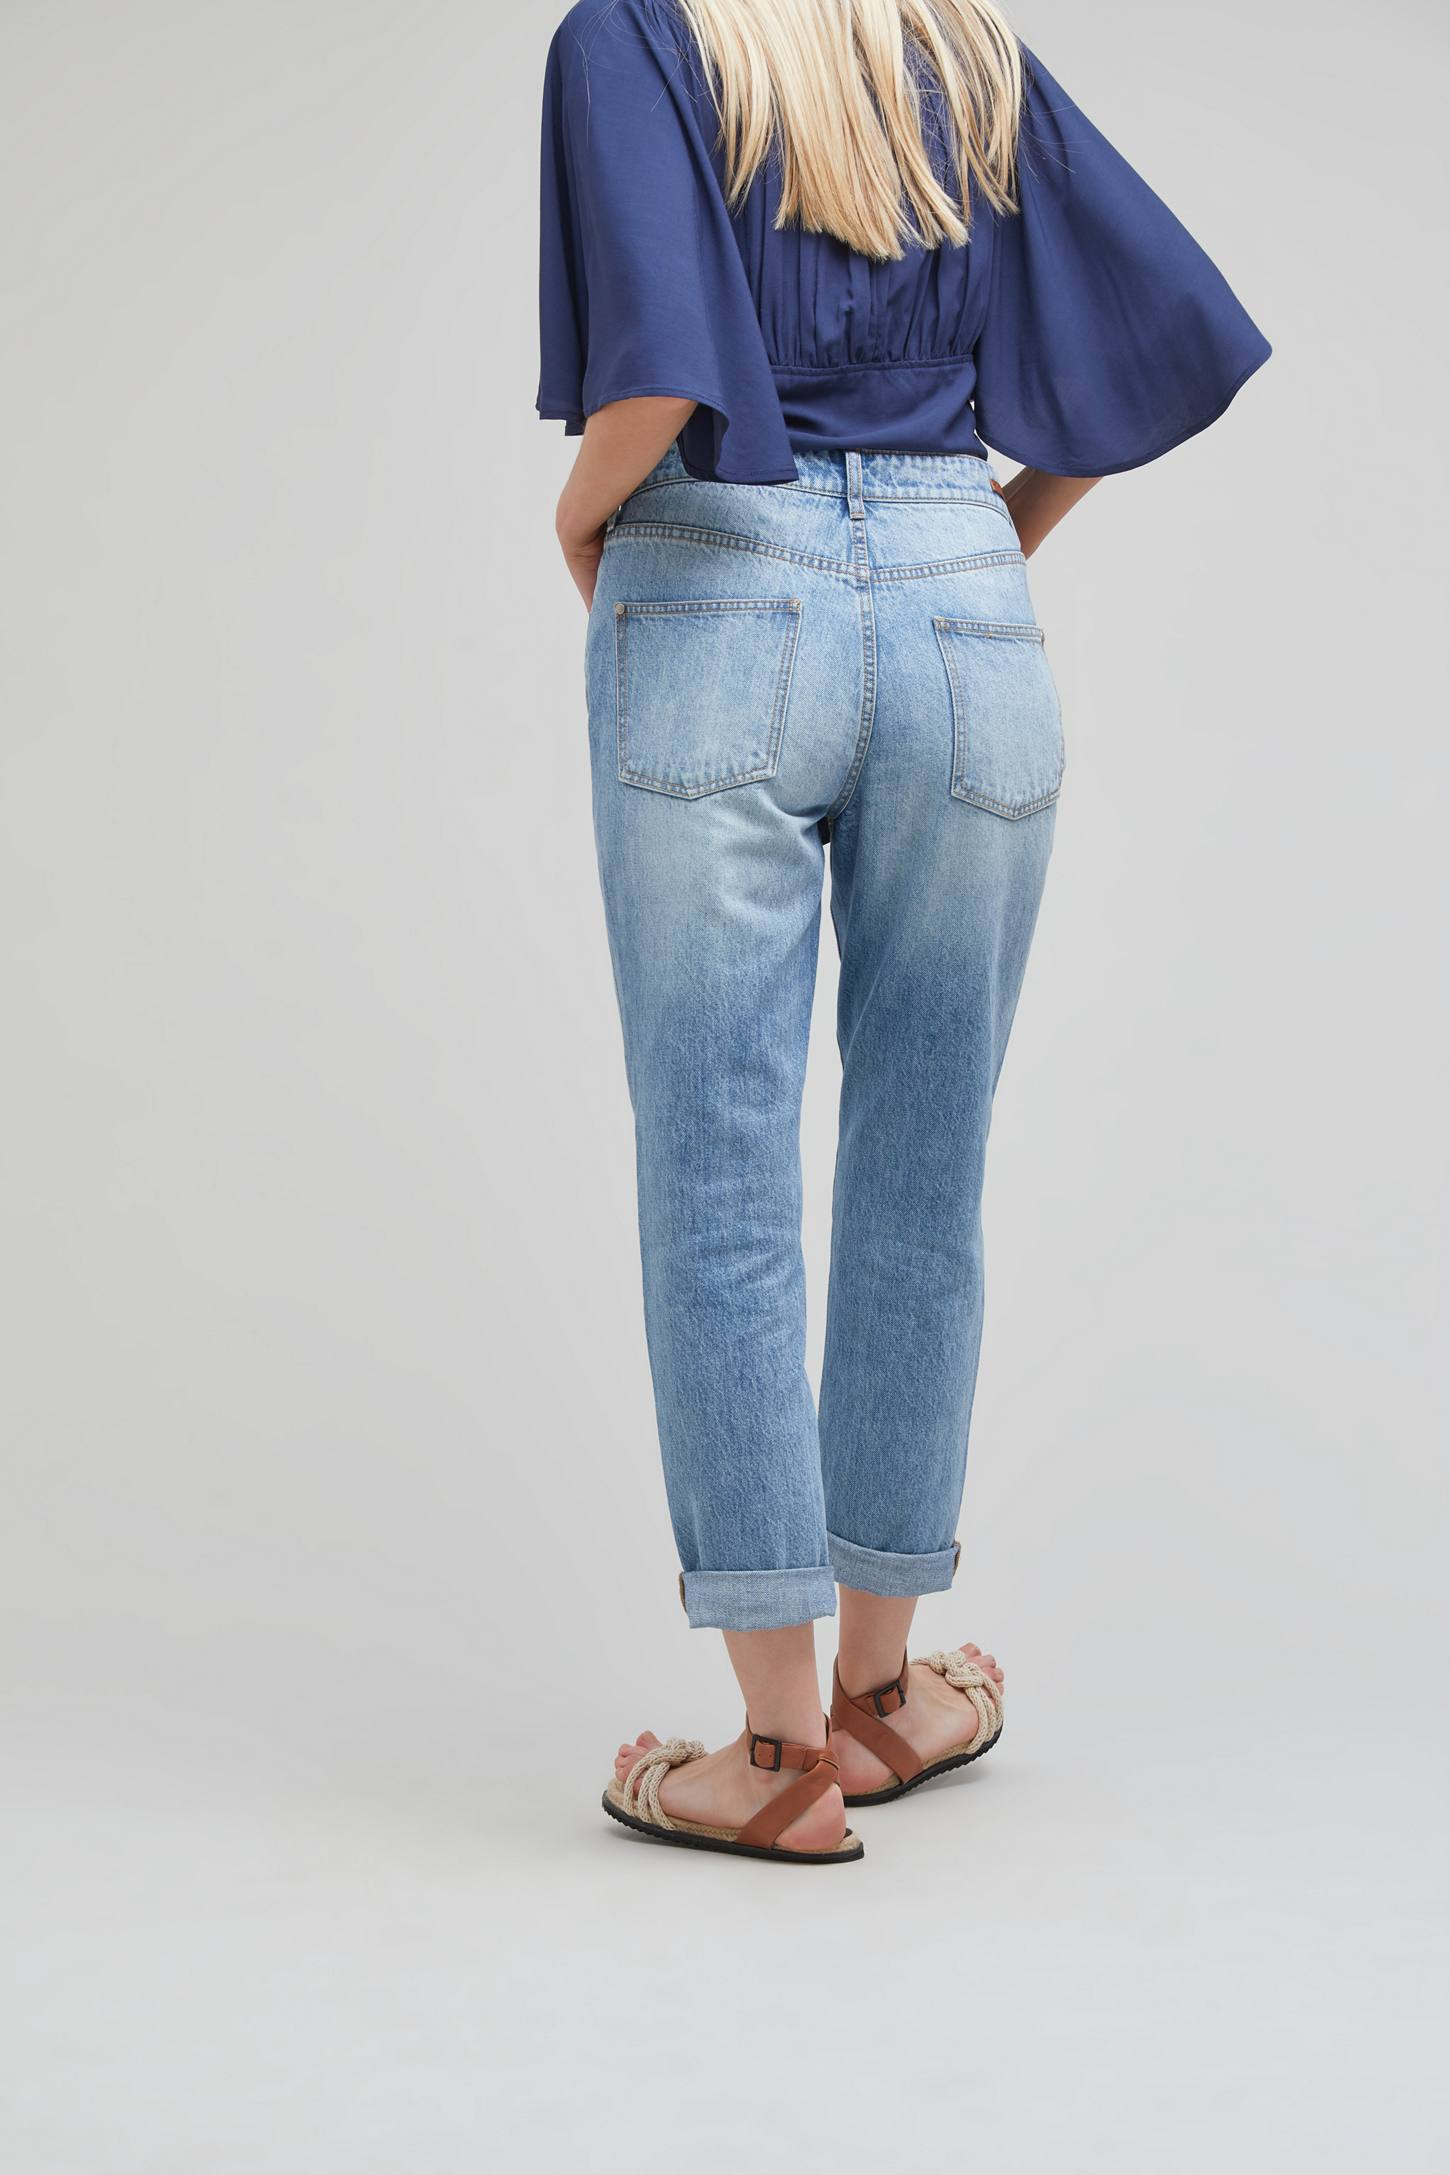 Slide View: 4: Pilcro Tilde Light-Wash Jeans